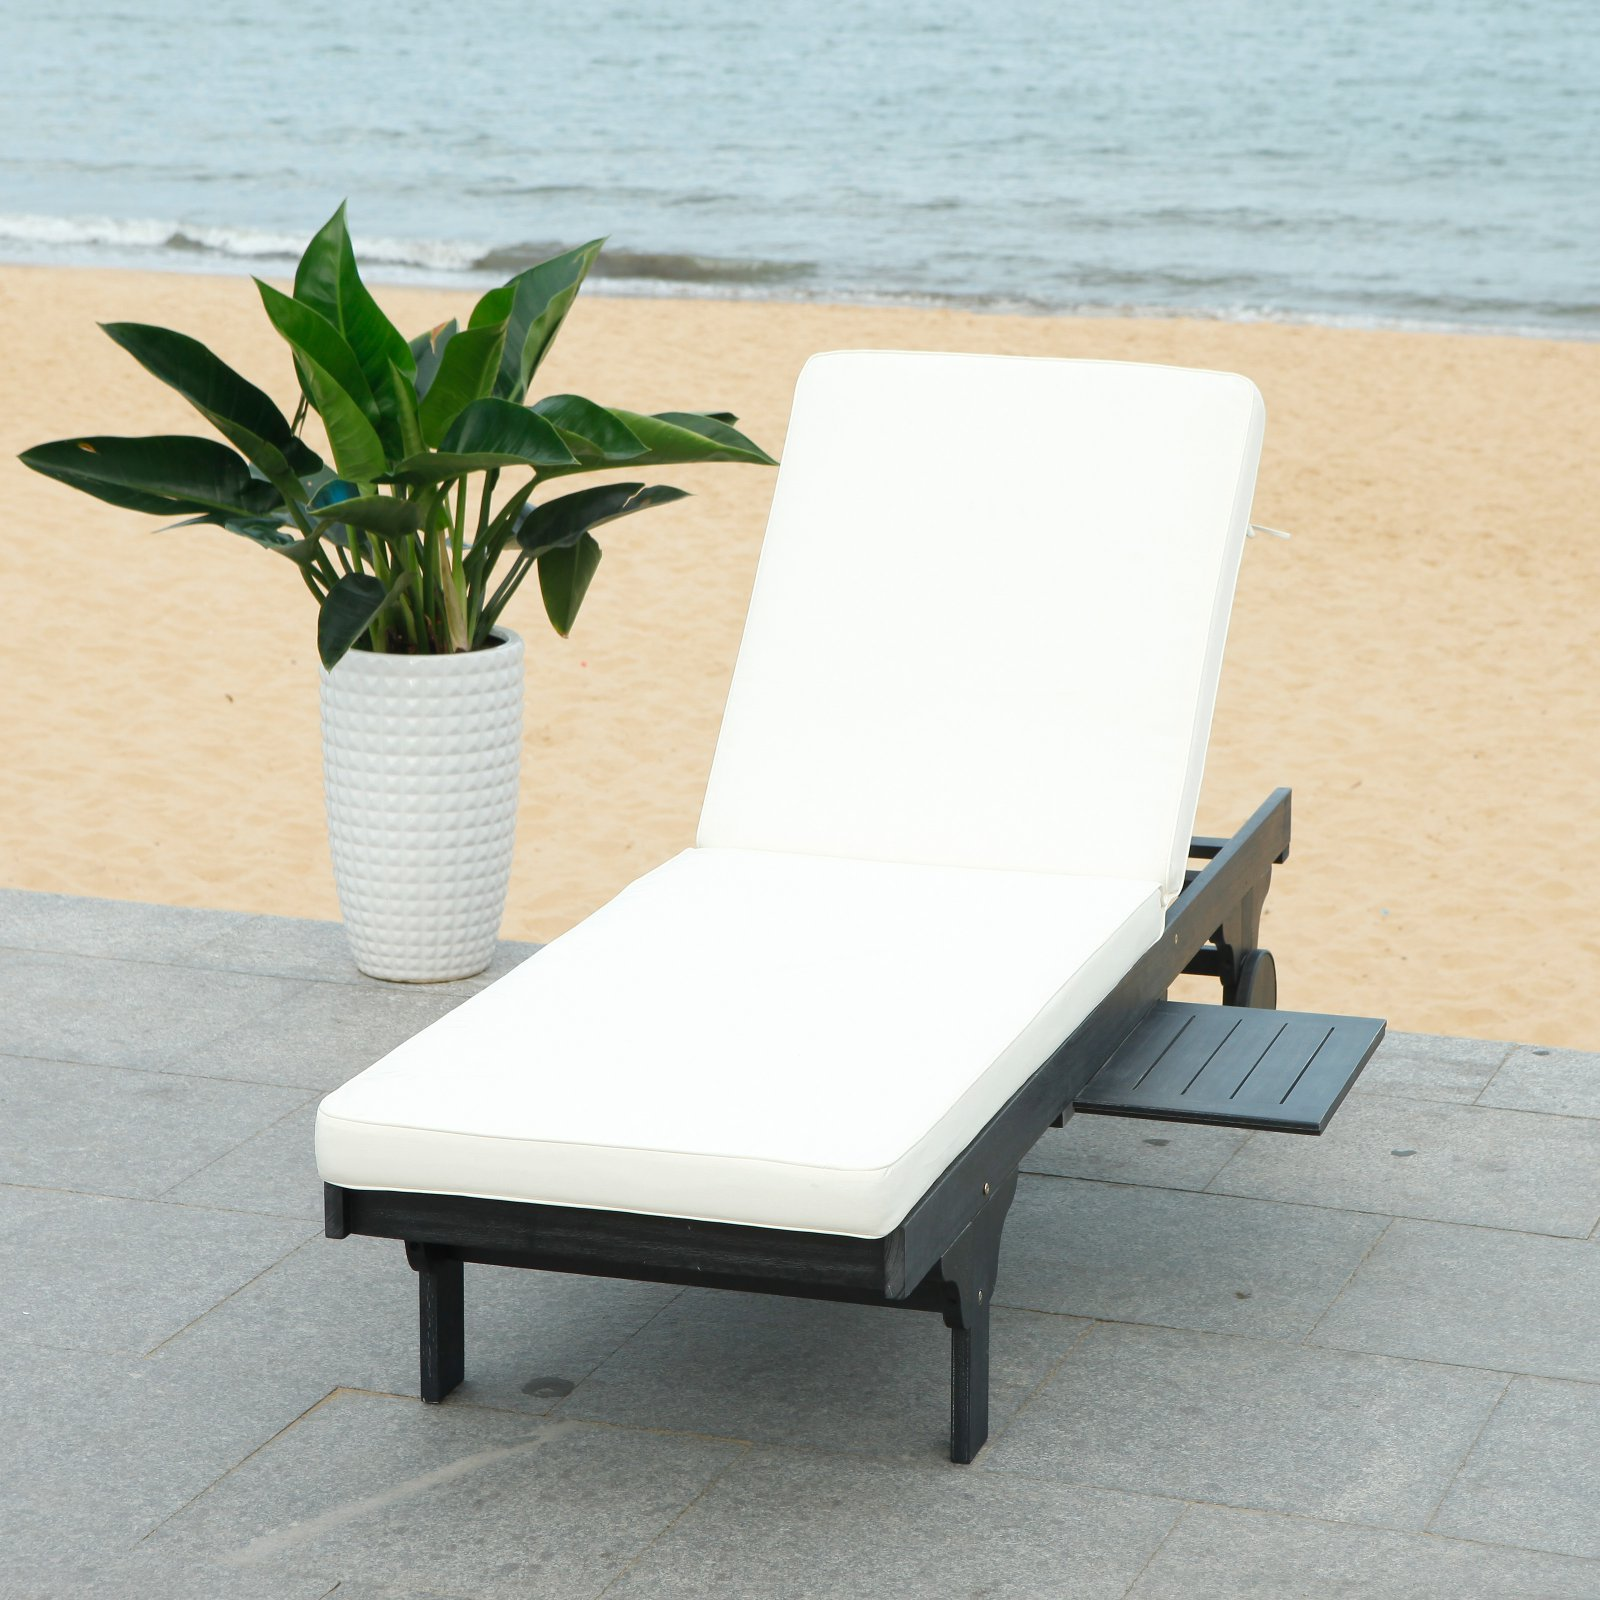 Safavieh Newport Outdoor Modern Chaise Lounge Chair with Cushion